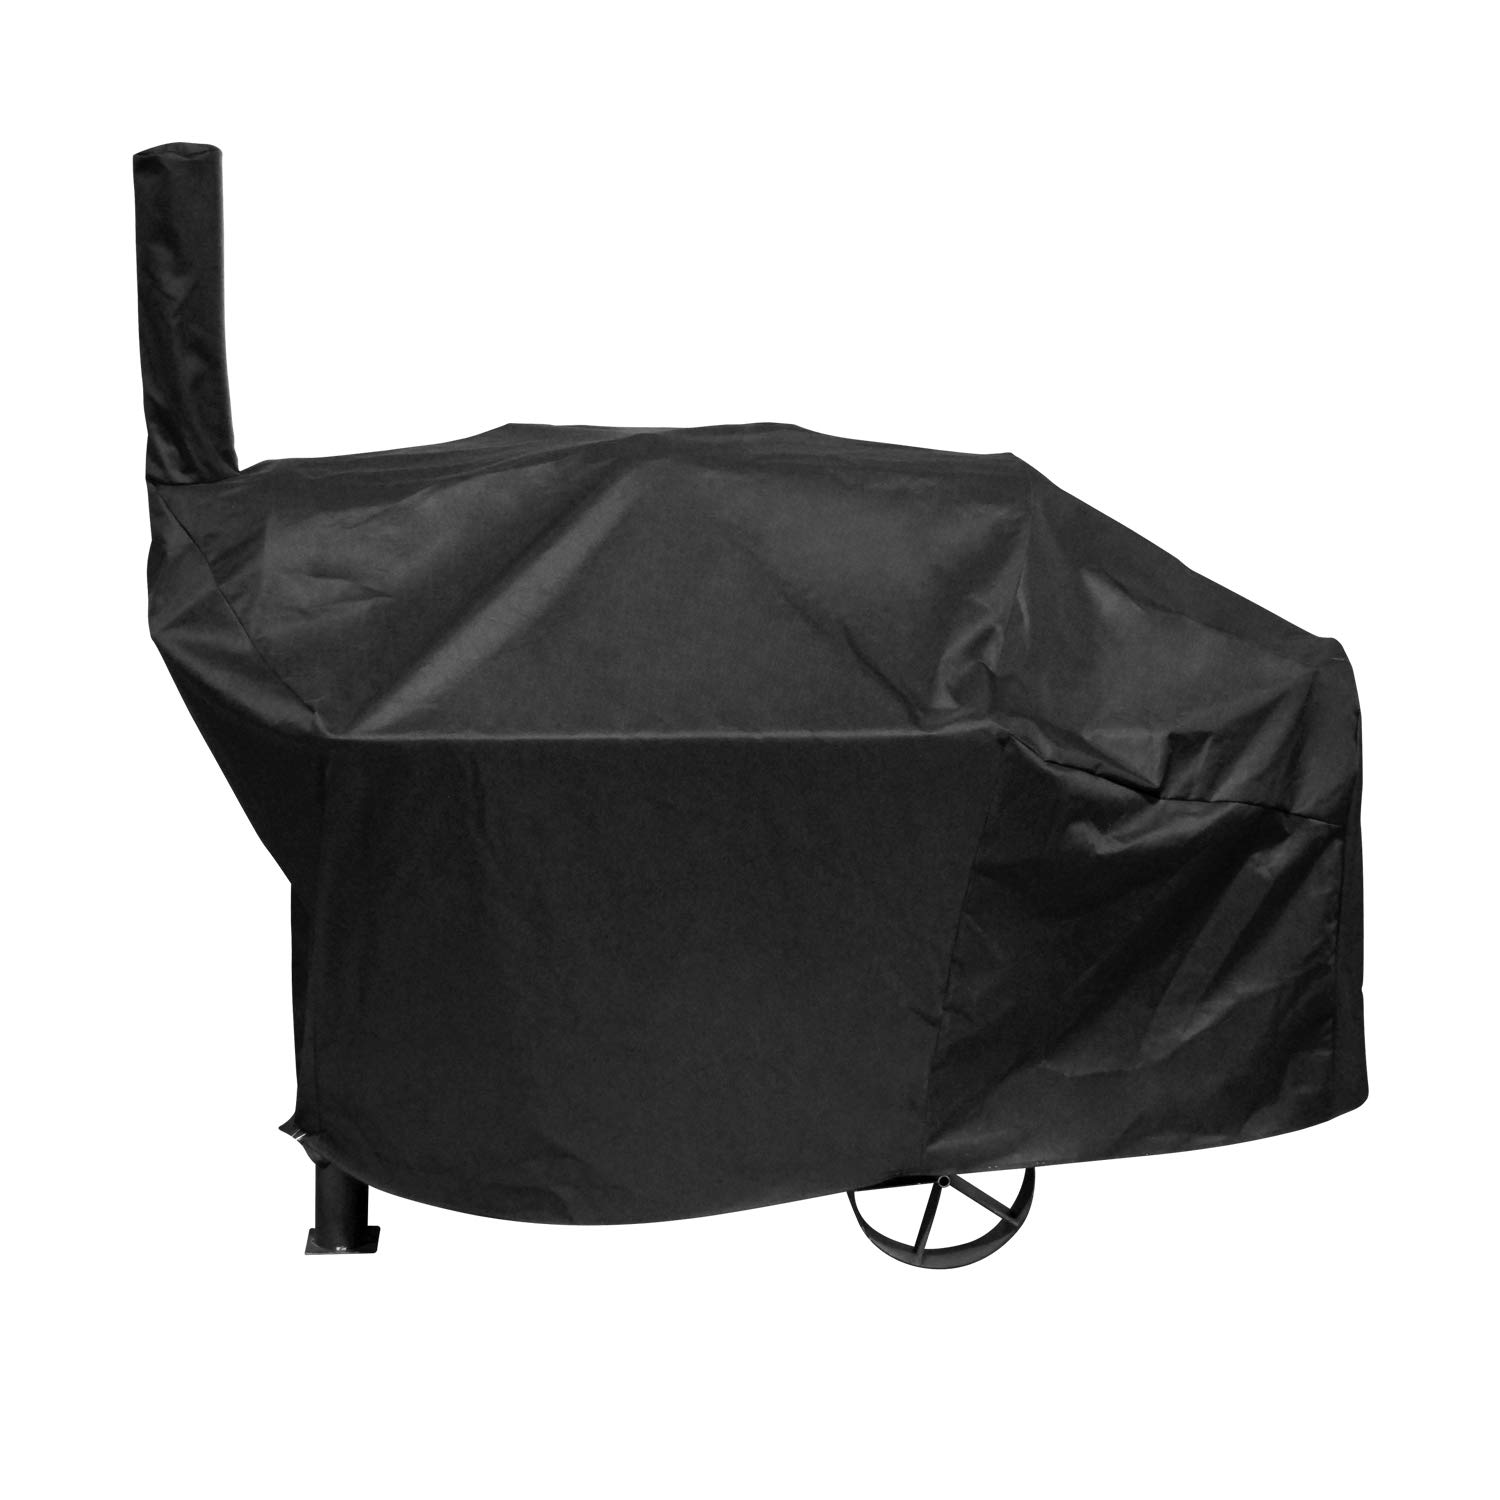 UNICOOK Heavy Duty Waterproof Charcoal Grill and Offset Smoker Cover, Outdoor Smokestack BBQ Cover, Special Fade and UV Resistant Material, Fits Brinkmann Trailmaster, Char-Broil, Dyna-Glo and More by UNICOOK